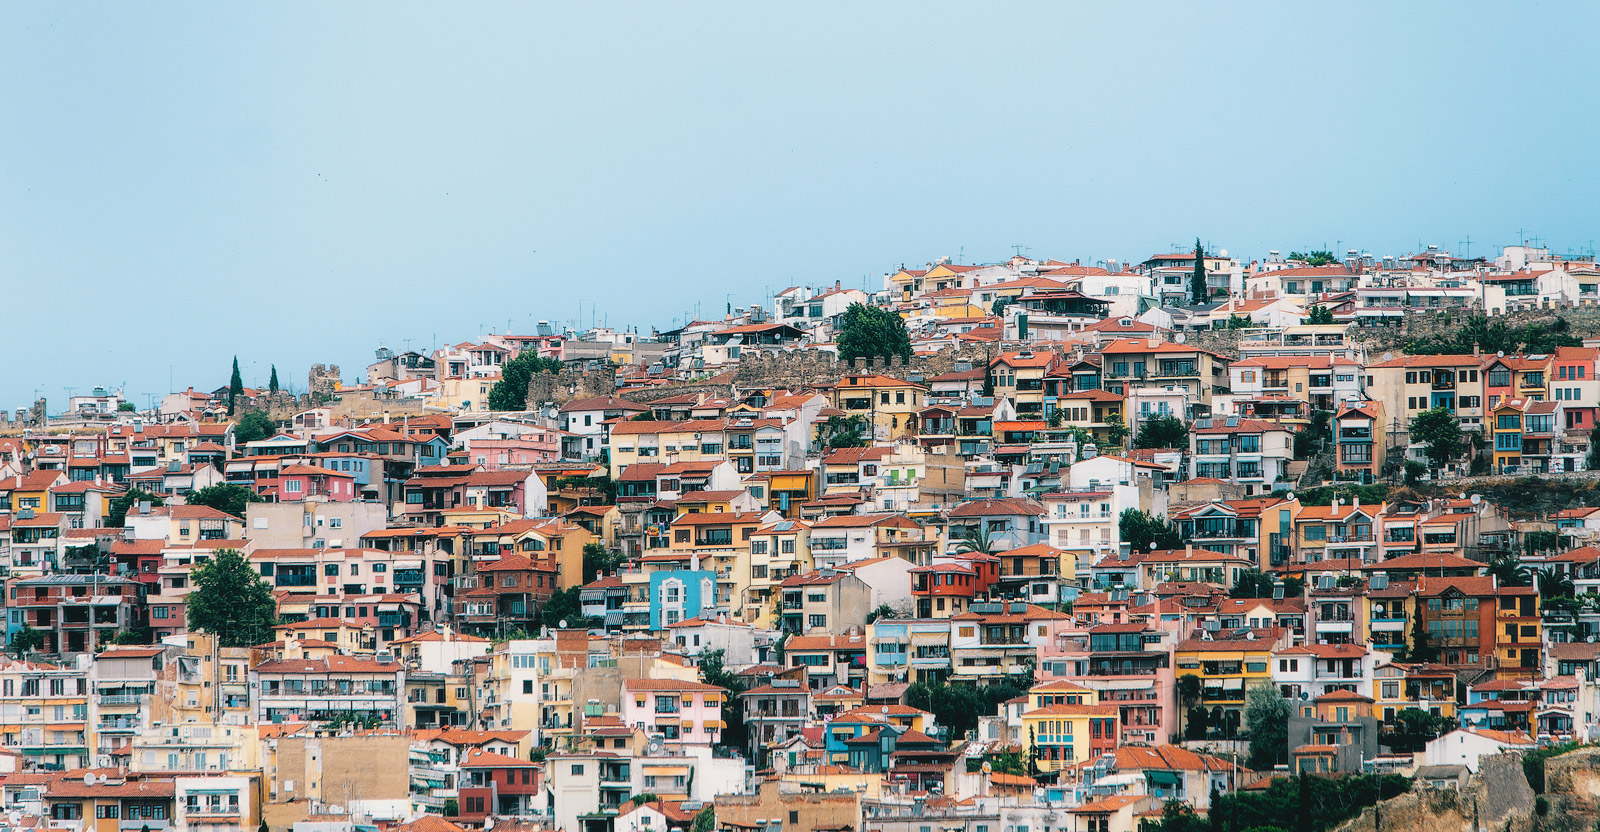 Aerial panoramic view of the colorful Thessaloniki city